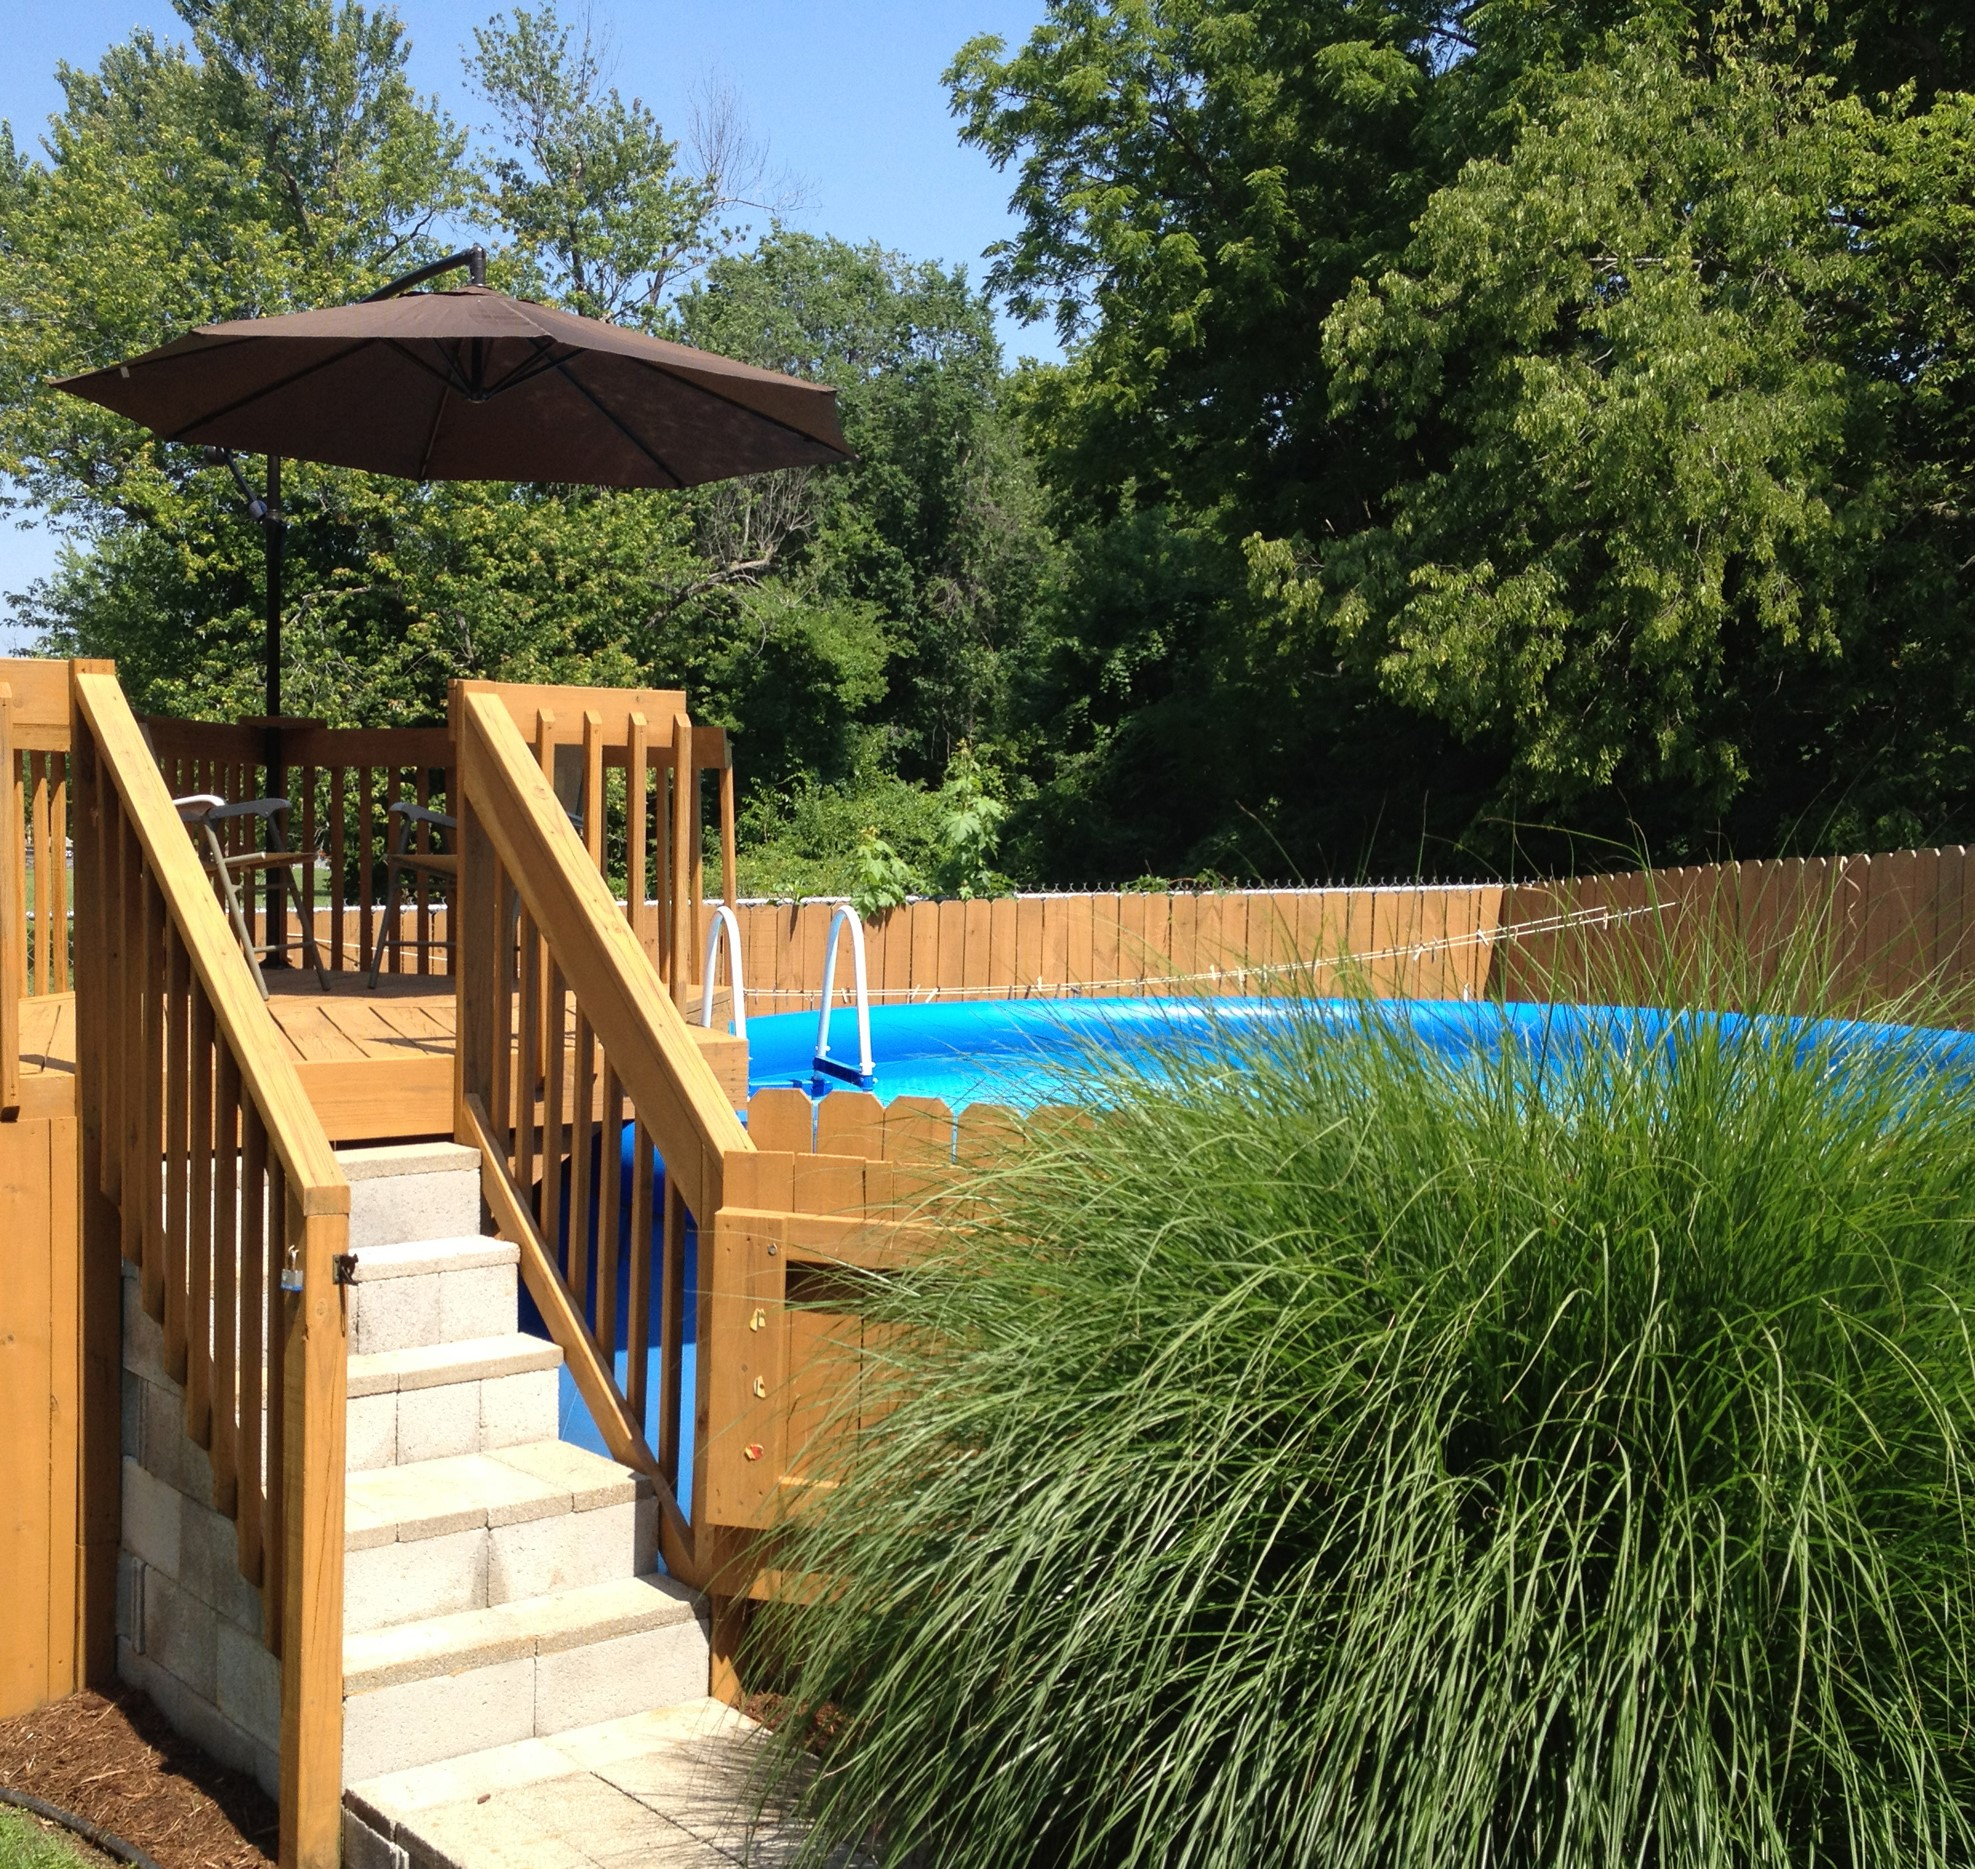 Fencing Bath - Types of Fencing for your Garden Bath - Exact Viral